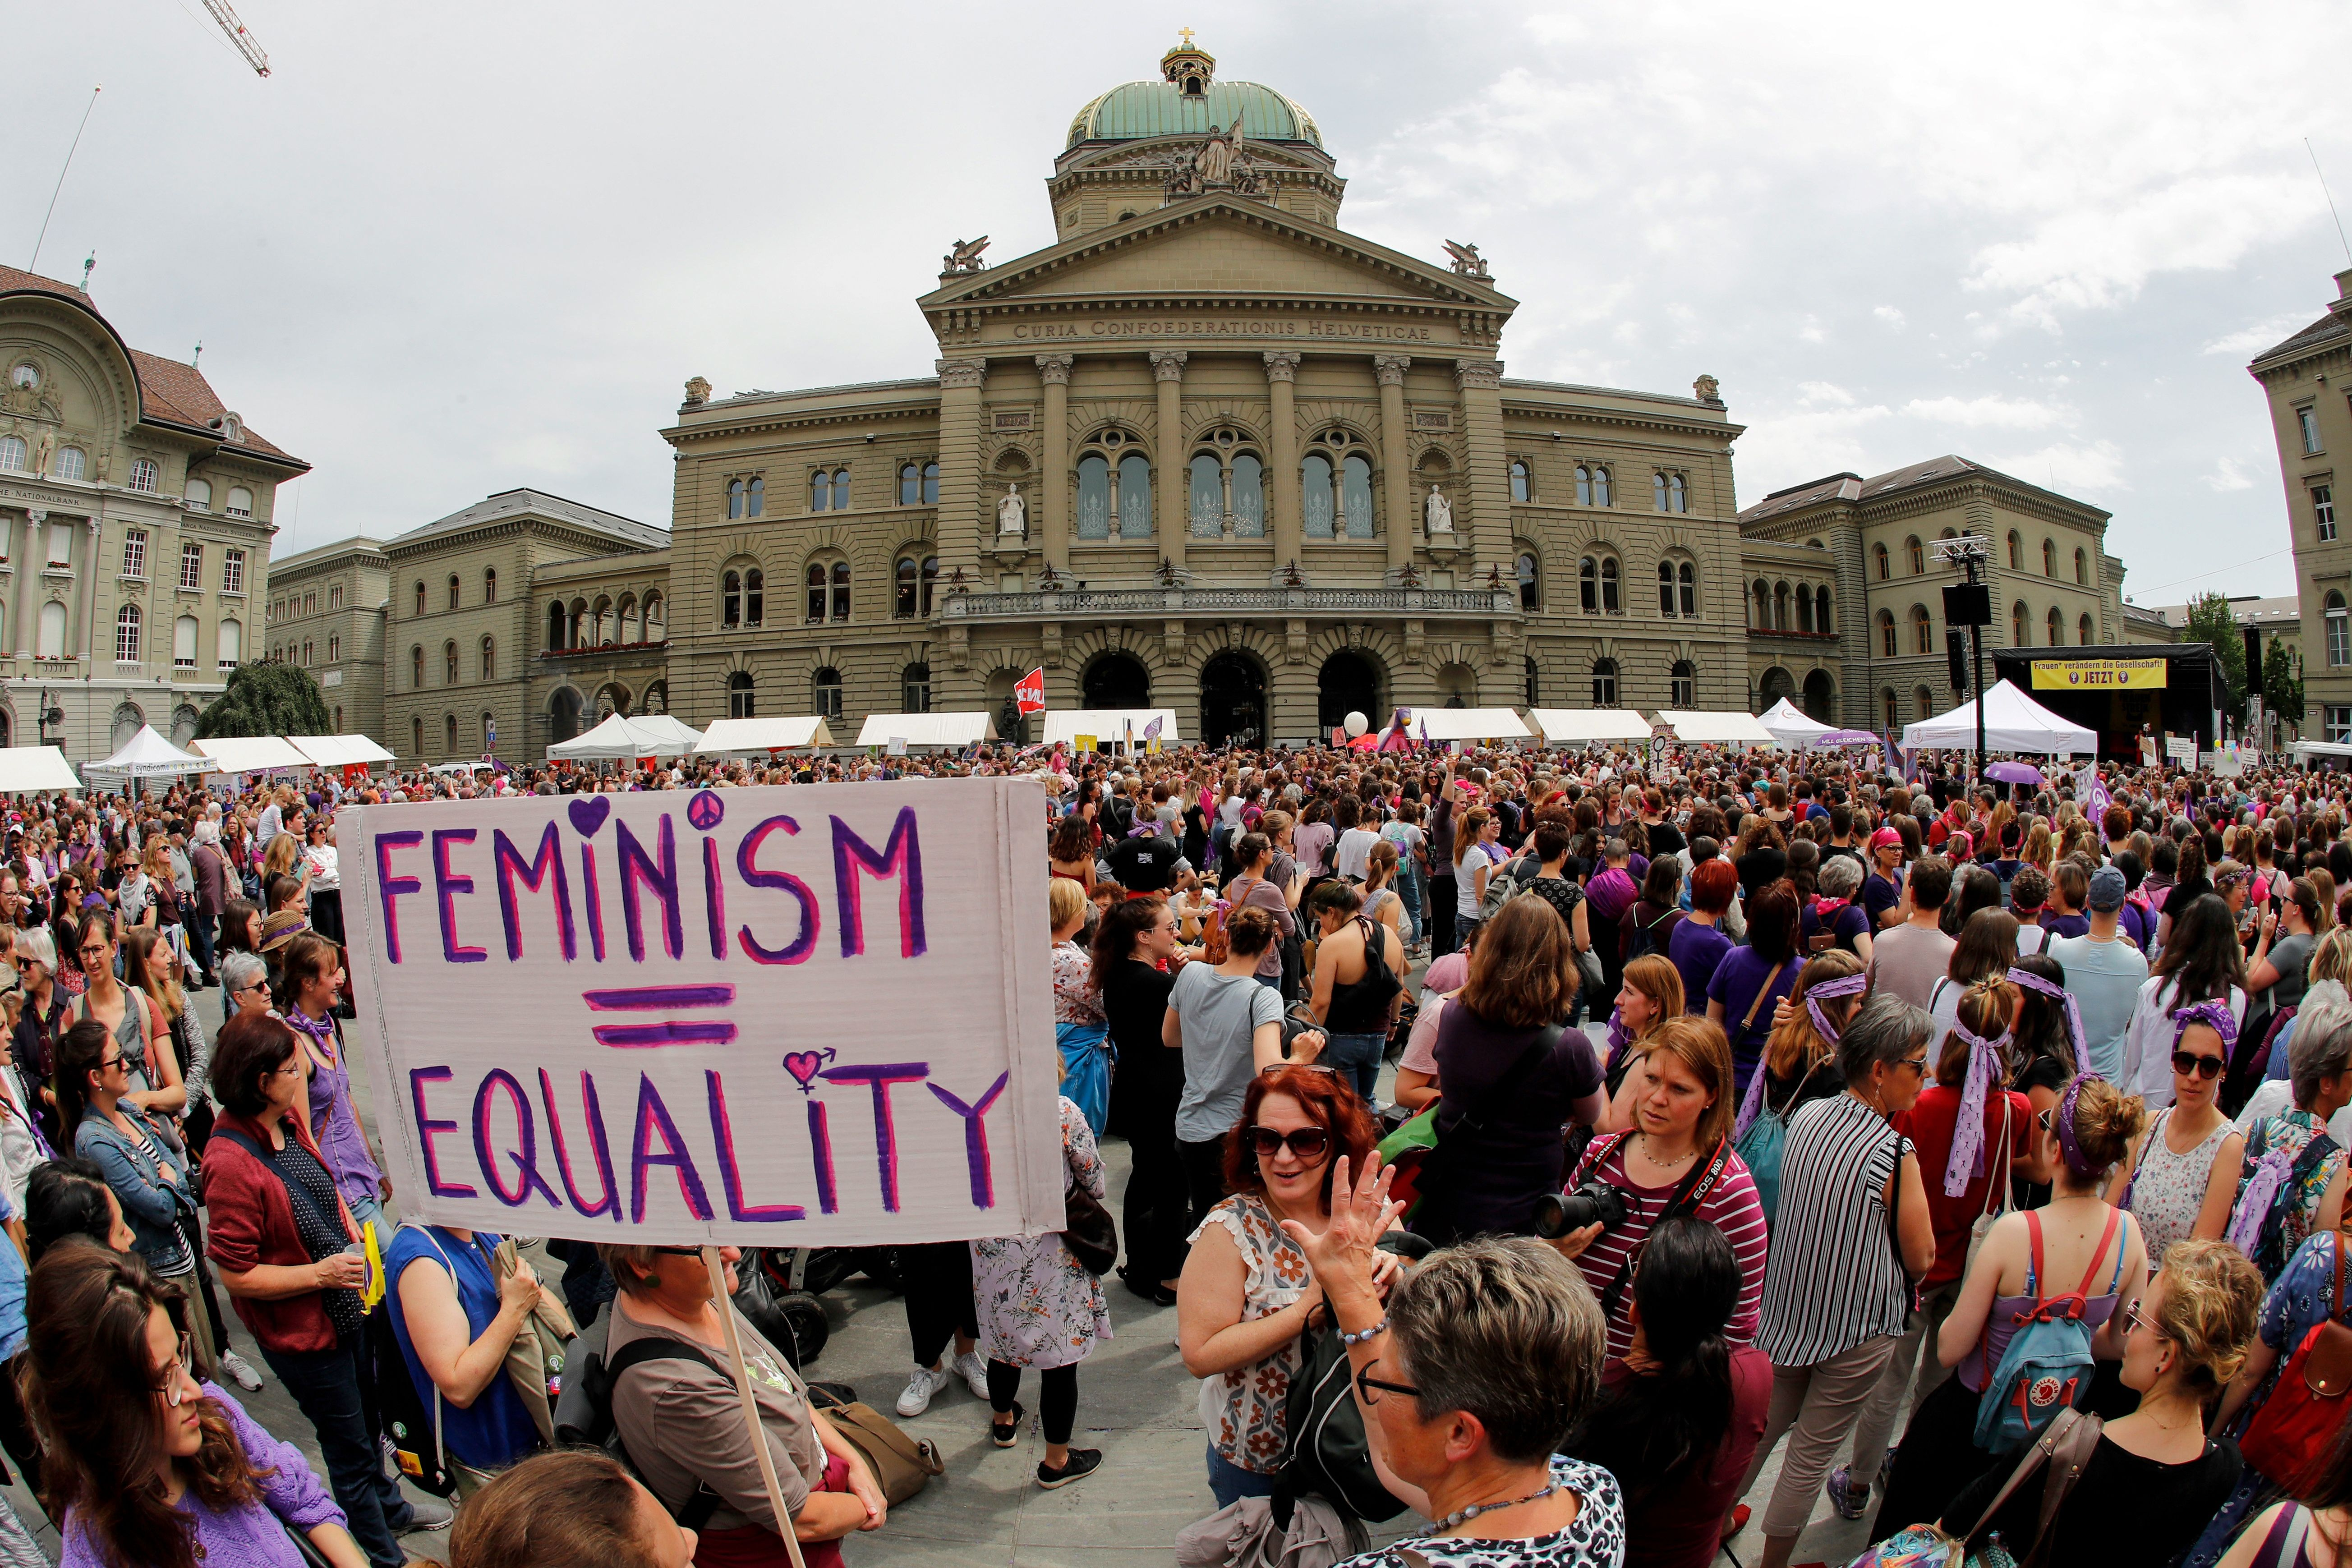 Thousands of Swiss women walked out of their jobs to protest inequality